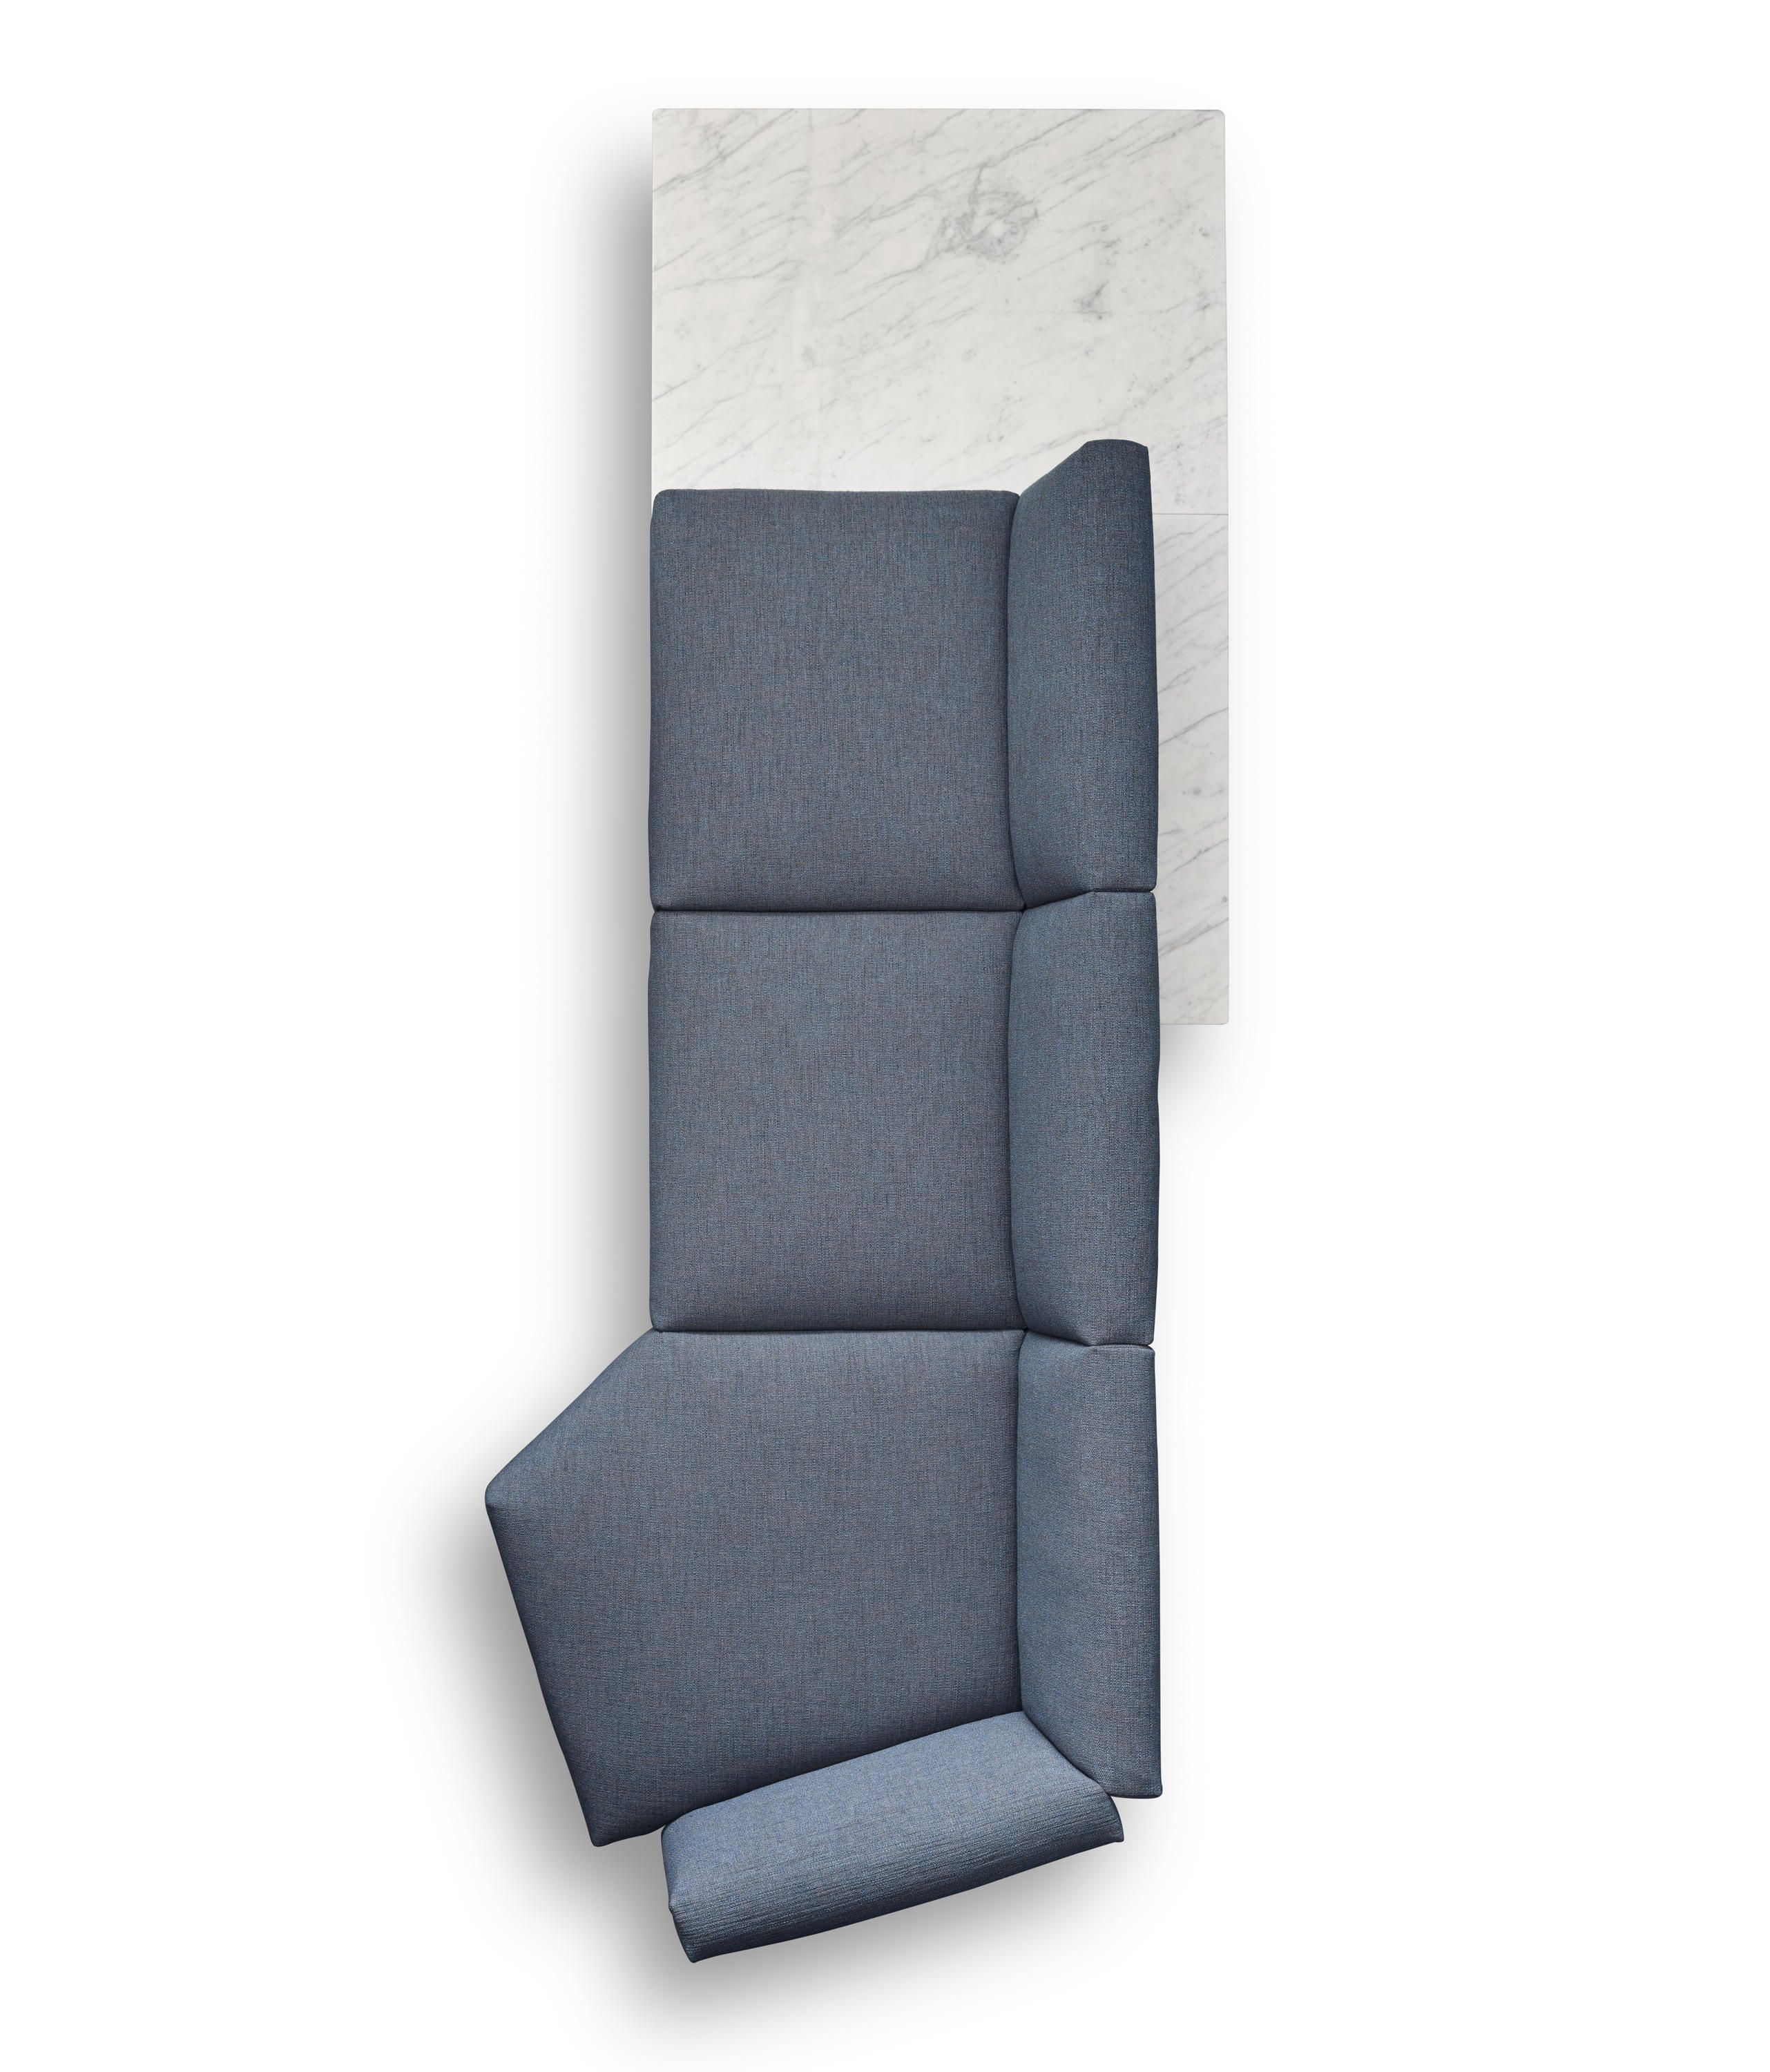 Knoll International Avio Sofa System Designer Lounge Sofas From Knoll International